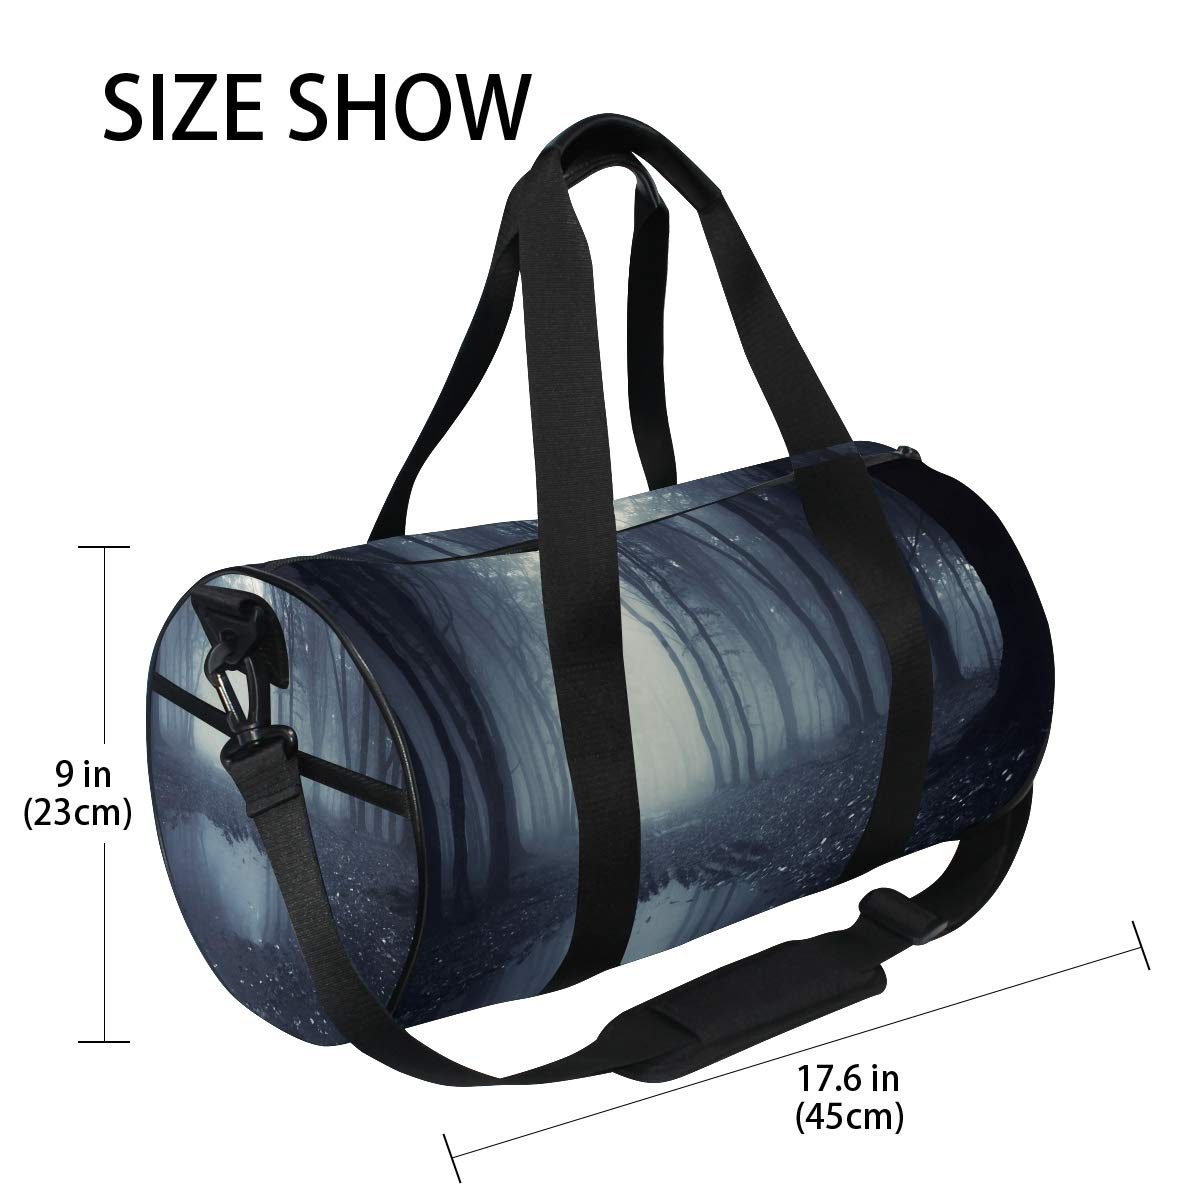 Sports Gym Bag Travel Duffel Bag with Pockets Luggage & Travel Gear Shoulder Strap Fitness Bag by EVERUI (Image #4)